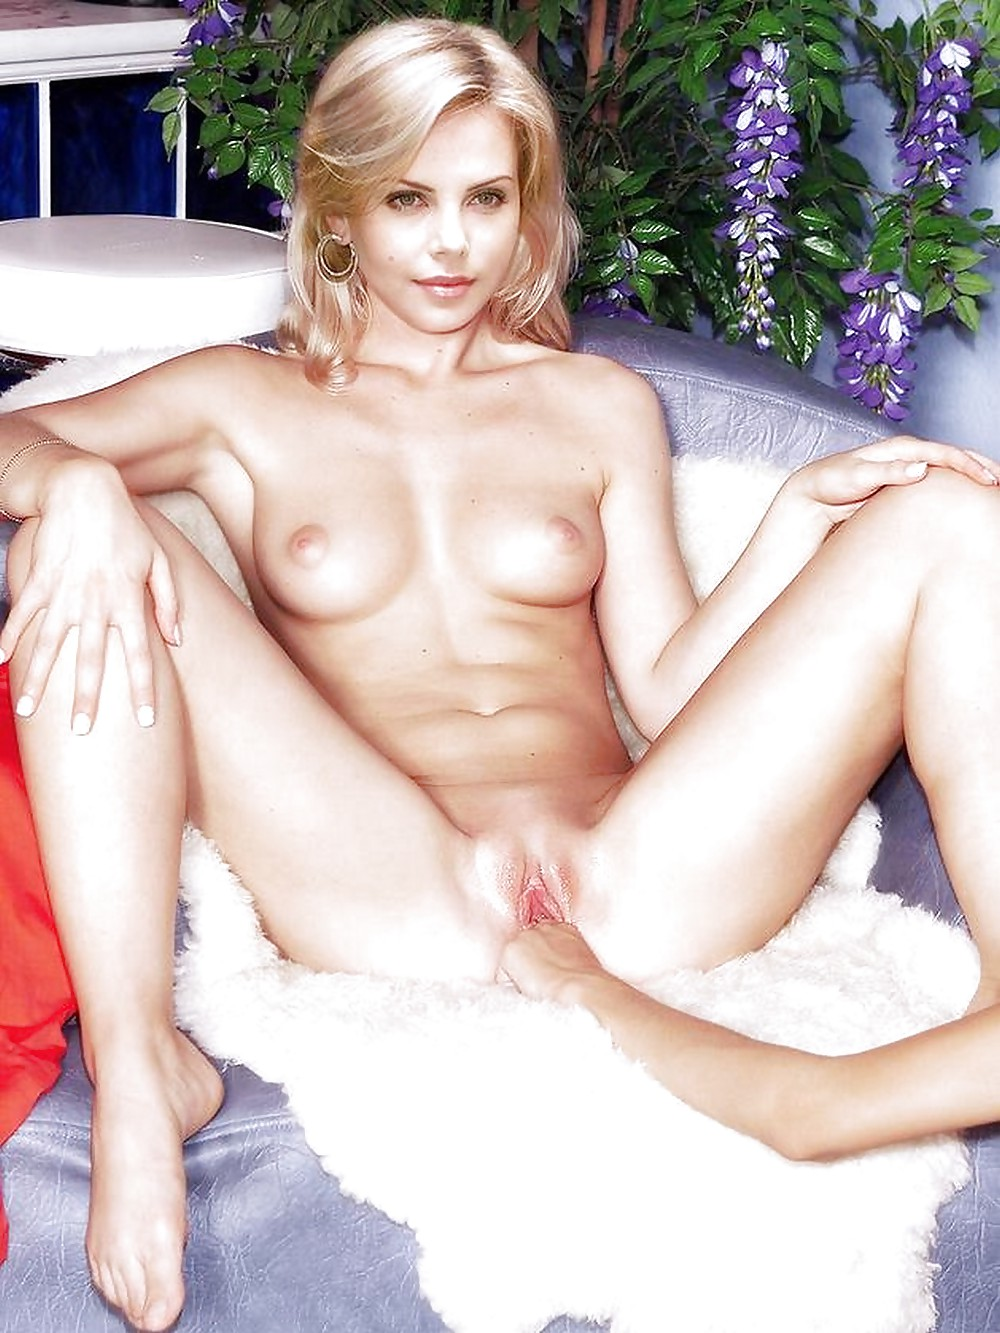 Charlize theronpussy, www black n white freesex com in foto com